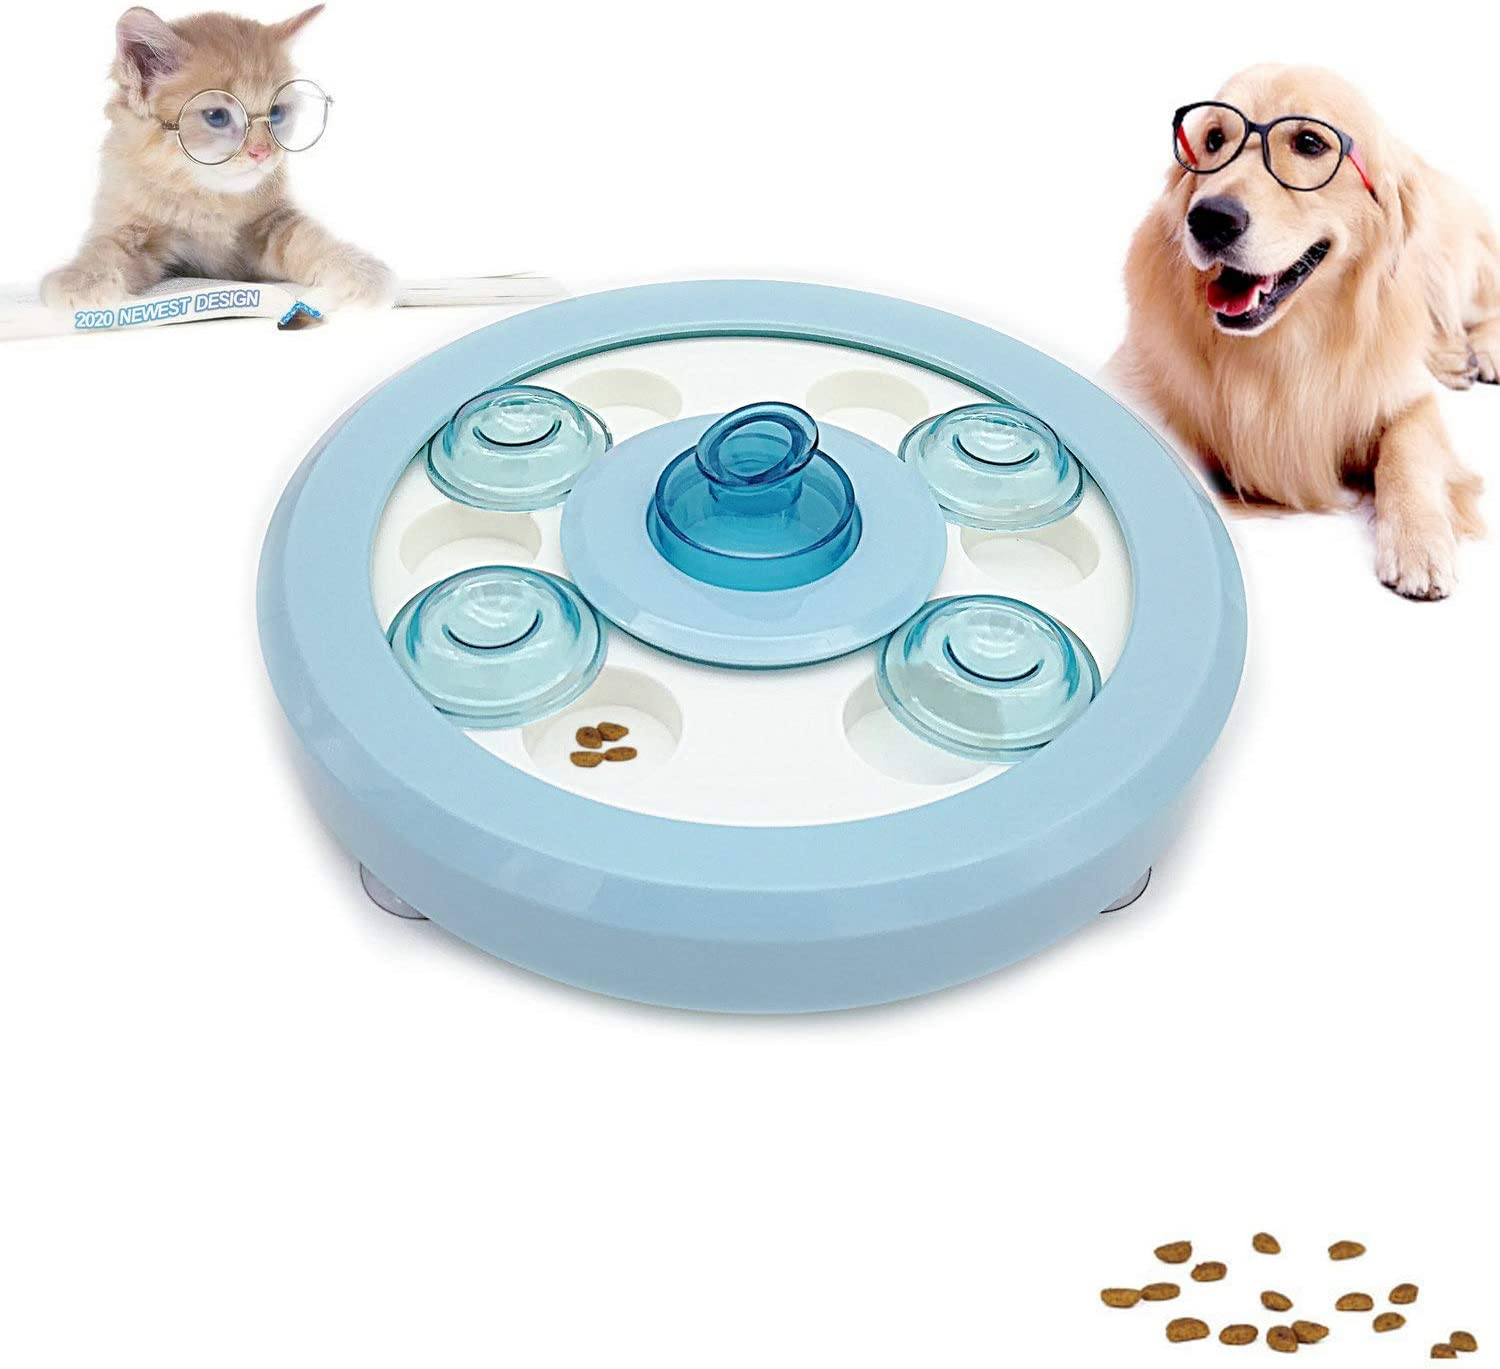 Dog Puzzle Toys Puppy Puzzle Game Toy for Beginner Treat Dispenser for Dogs Training Slow Feeder Interactive Dog Puzzles Food-Dispensing IQ Toys Cat Treat Dispenser Dog Treat Puzzle Games for Dogs